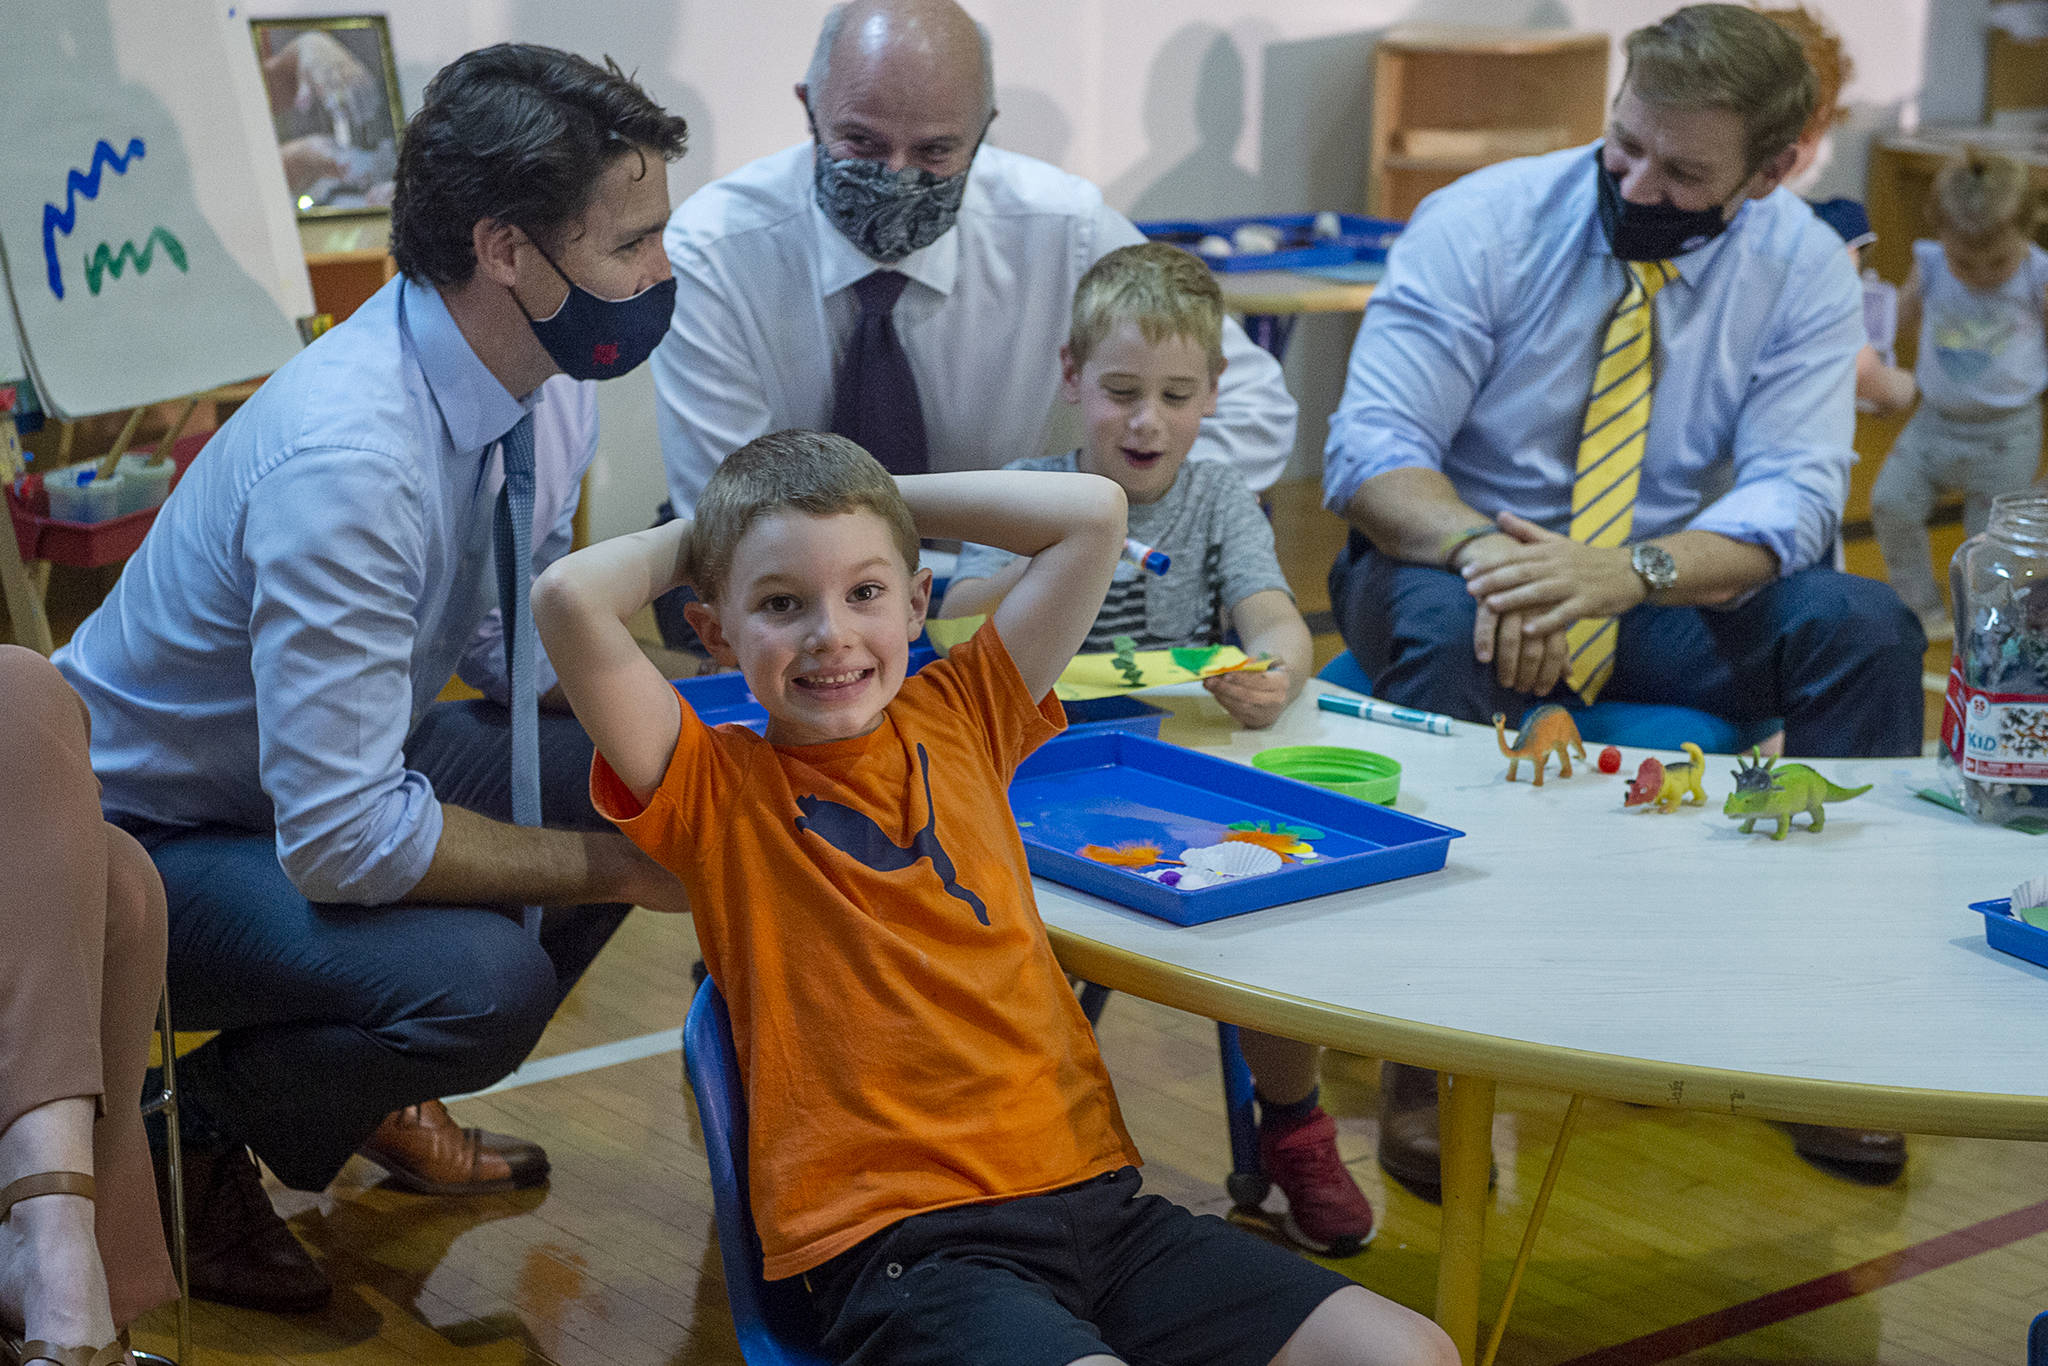 A young boys smiles for the cameras as Prime Minister Justin Trudeau, Education Minister Tom Osborne and Newfoundland and Labrador Premier Andrew Furey, left to right, engage with children at the College of the North Atlantic in St. John's, N.L. on Wednesday, July 28, 2021. The province has struck a deal with Ottawa for a $10-a-day child-care program. THE CANADIAN PRESS/Andrew Vaughan